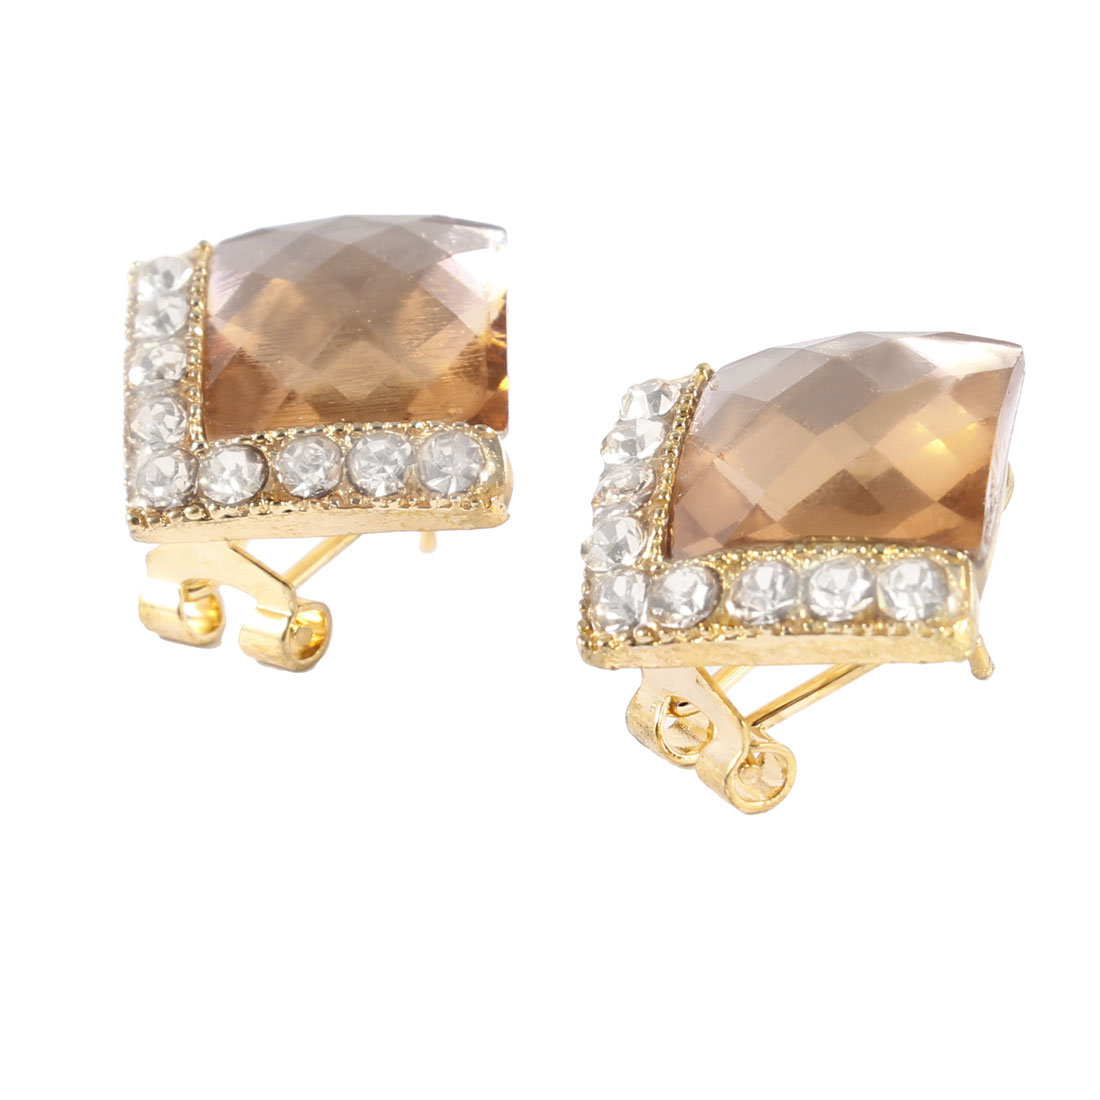 Pair Glittery Rhinestone Decor French Clip Stud Earrings for Lady